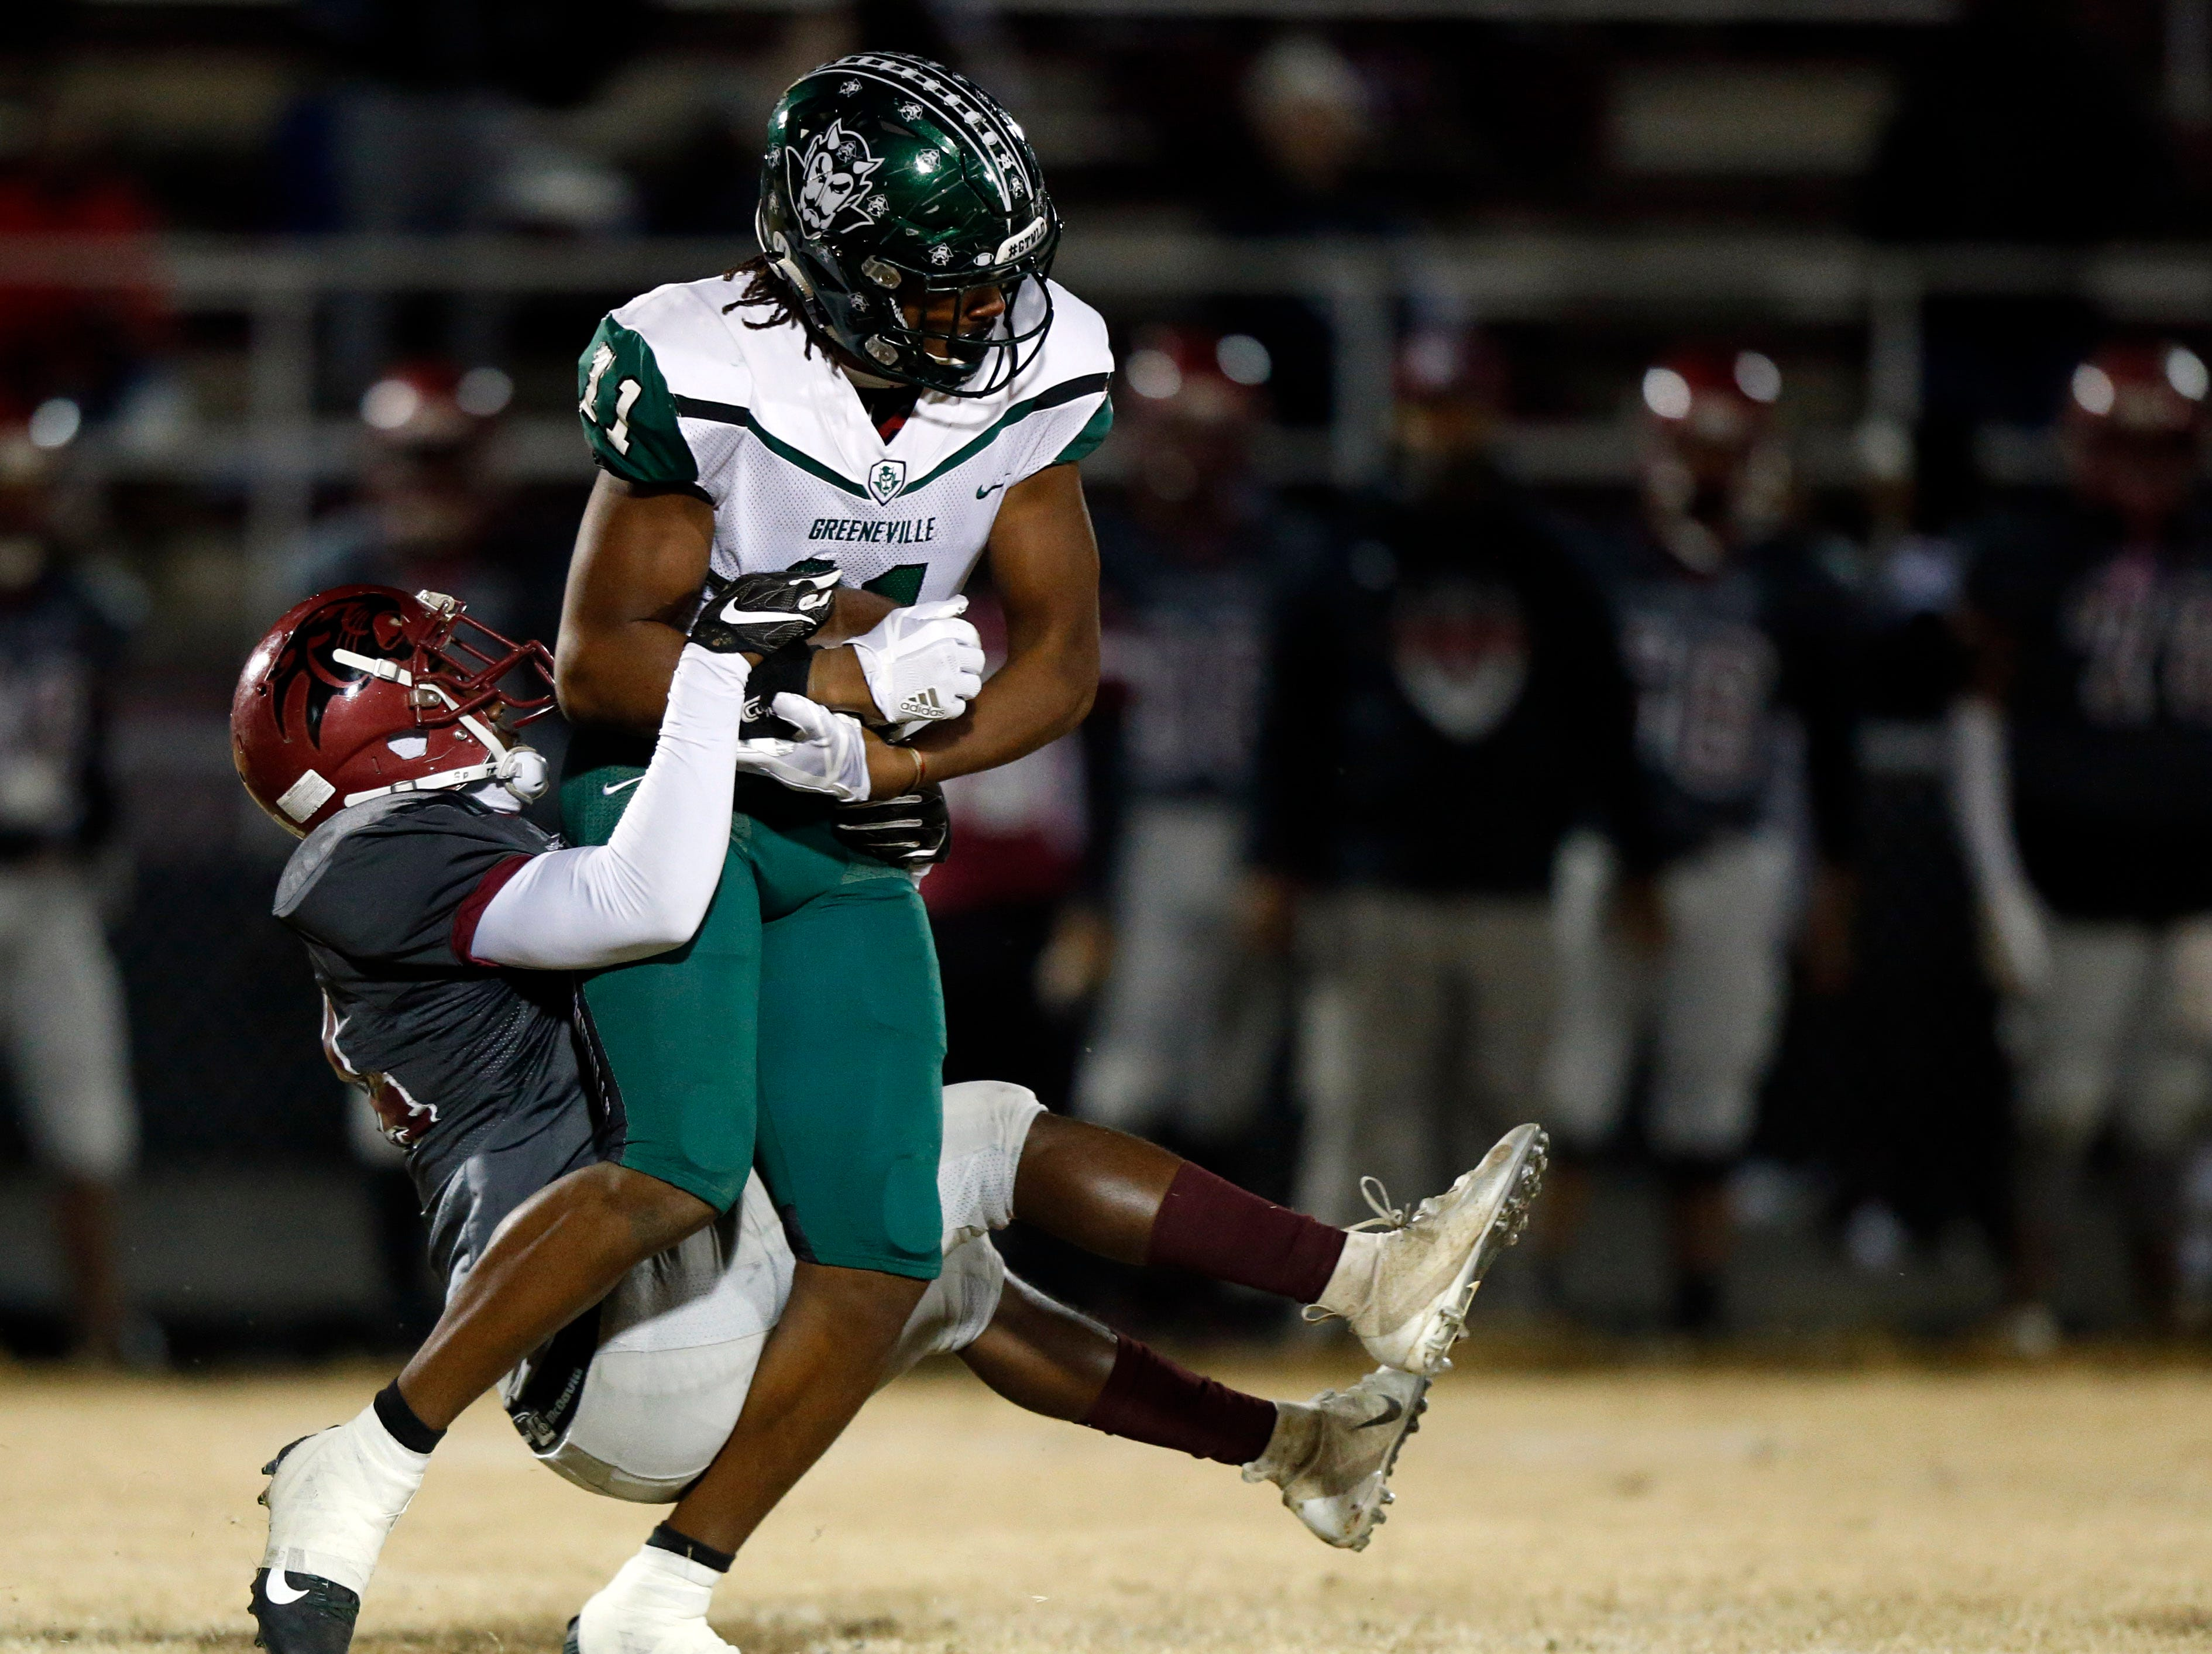 Greeneville's Dorien Goddard is tackled by Maplewood's Eric Johns Jr. during their game Friday, Nov. 23, 2018, in Nashville, TN.